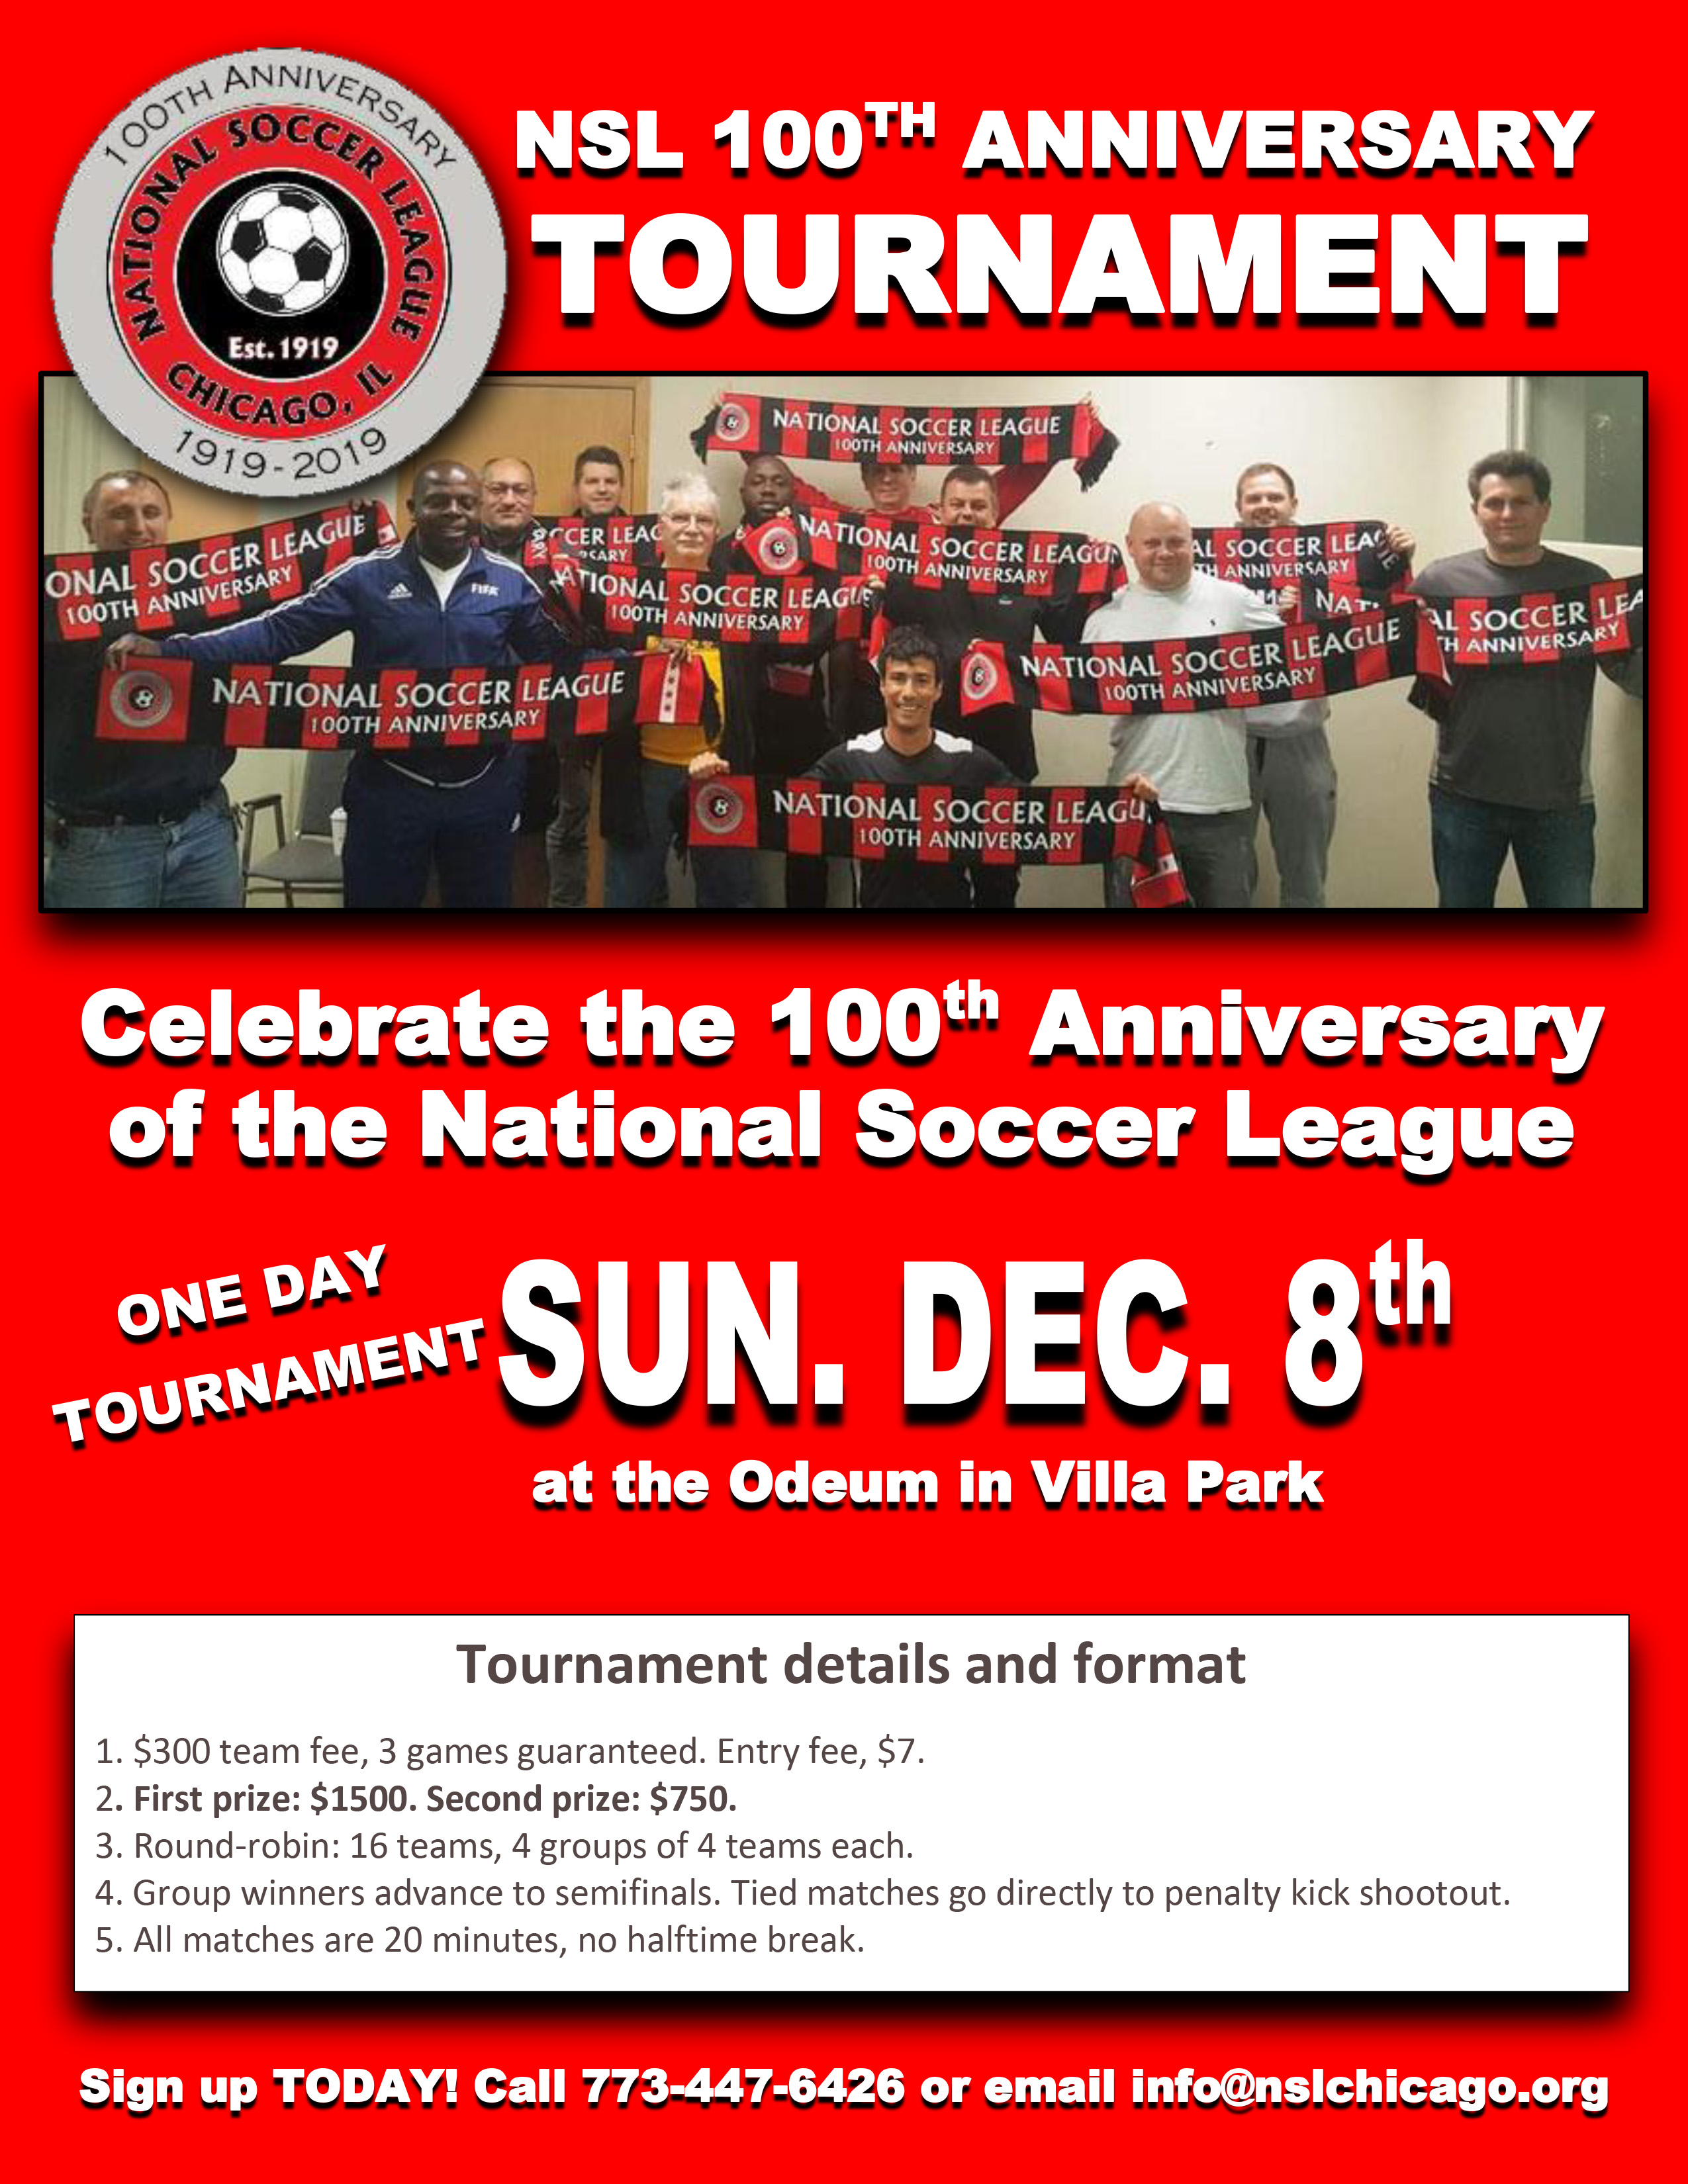 National Soccer League celebrates their 100th Anniversary with a one day tournament at the Odeum in Villa Park